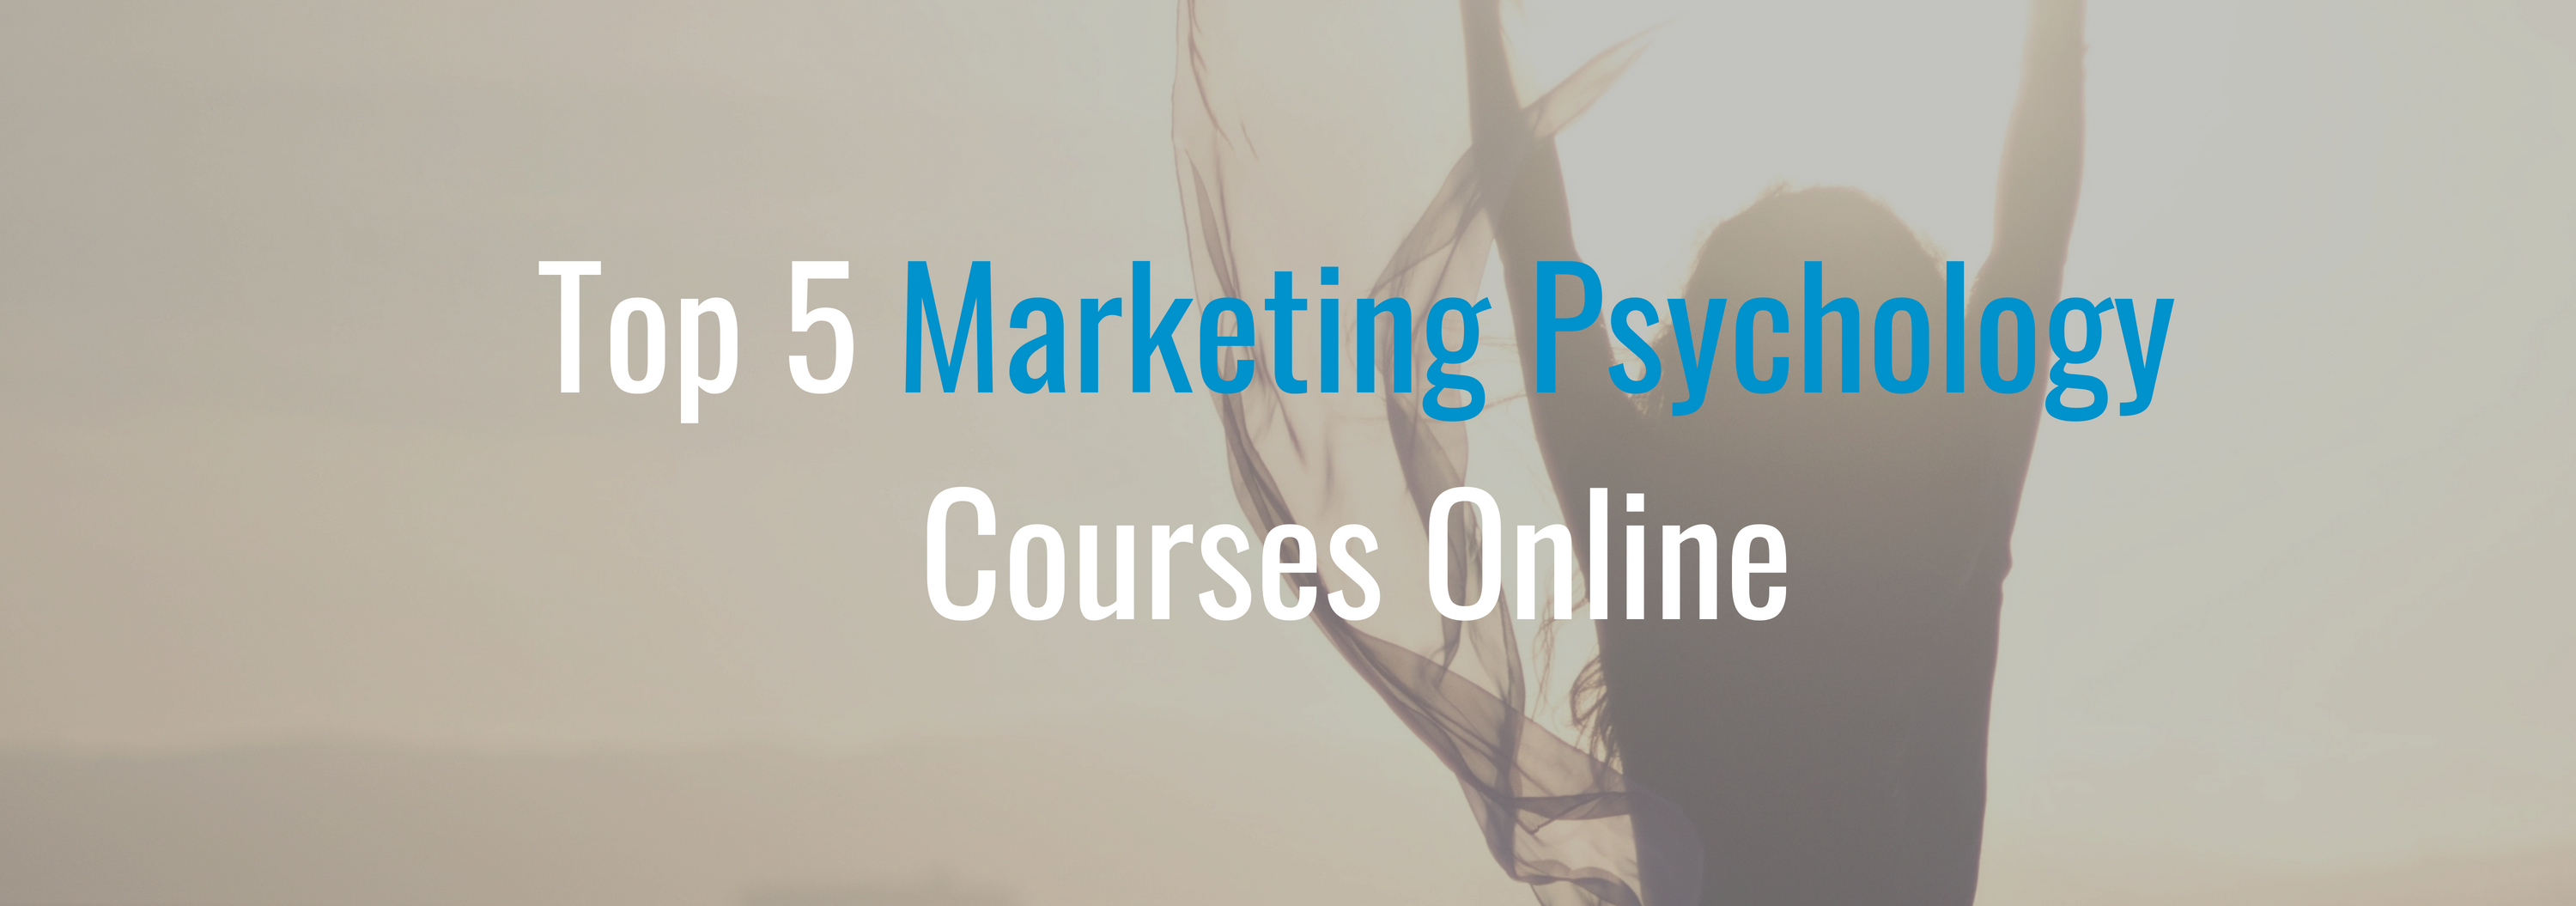 Top 5 Marketing Psychology Courses Online